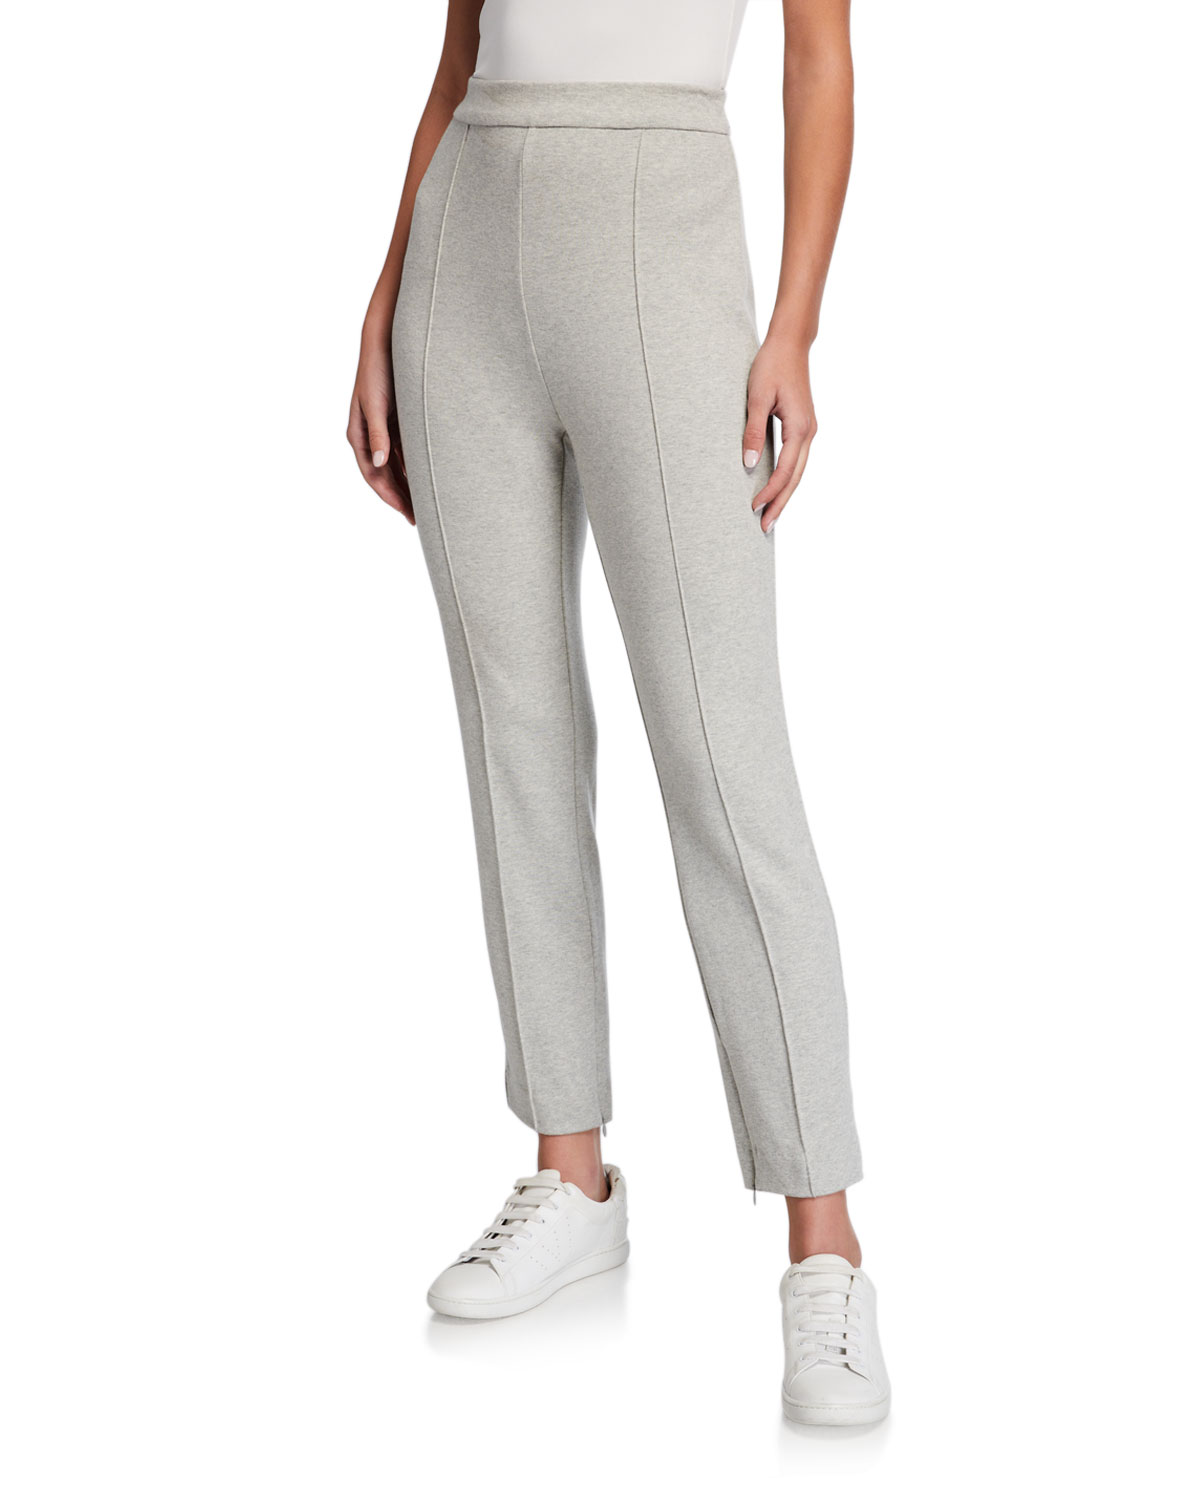 Joan Vass PETITE STITCHED SEAM ANKLE PANTS